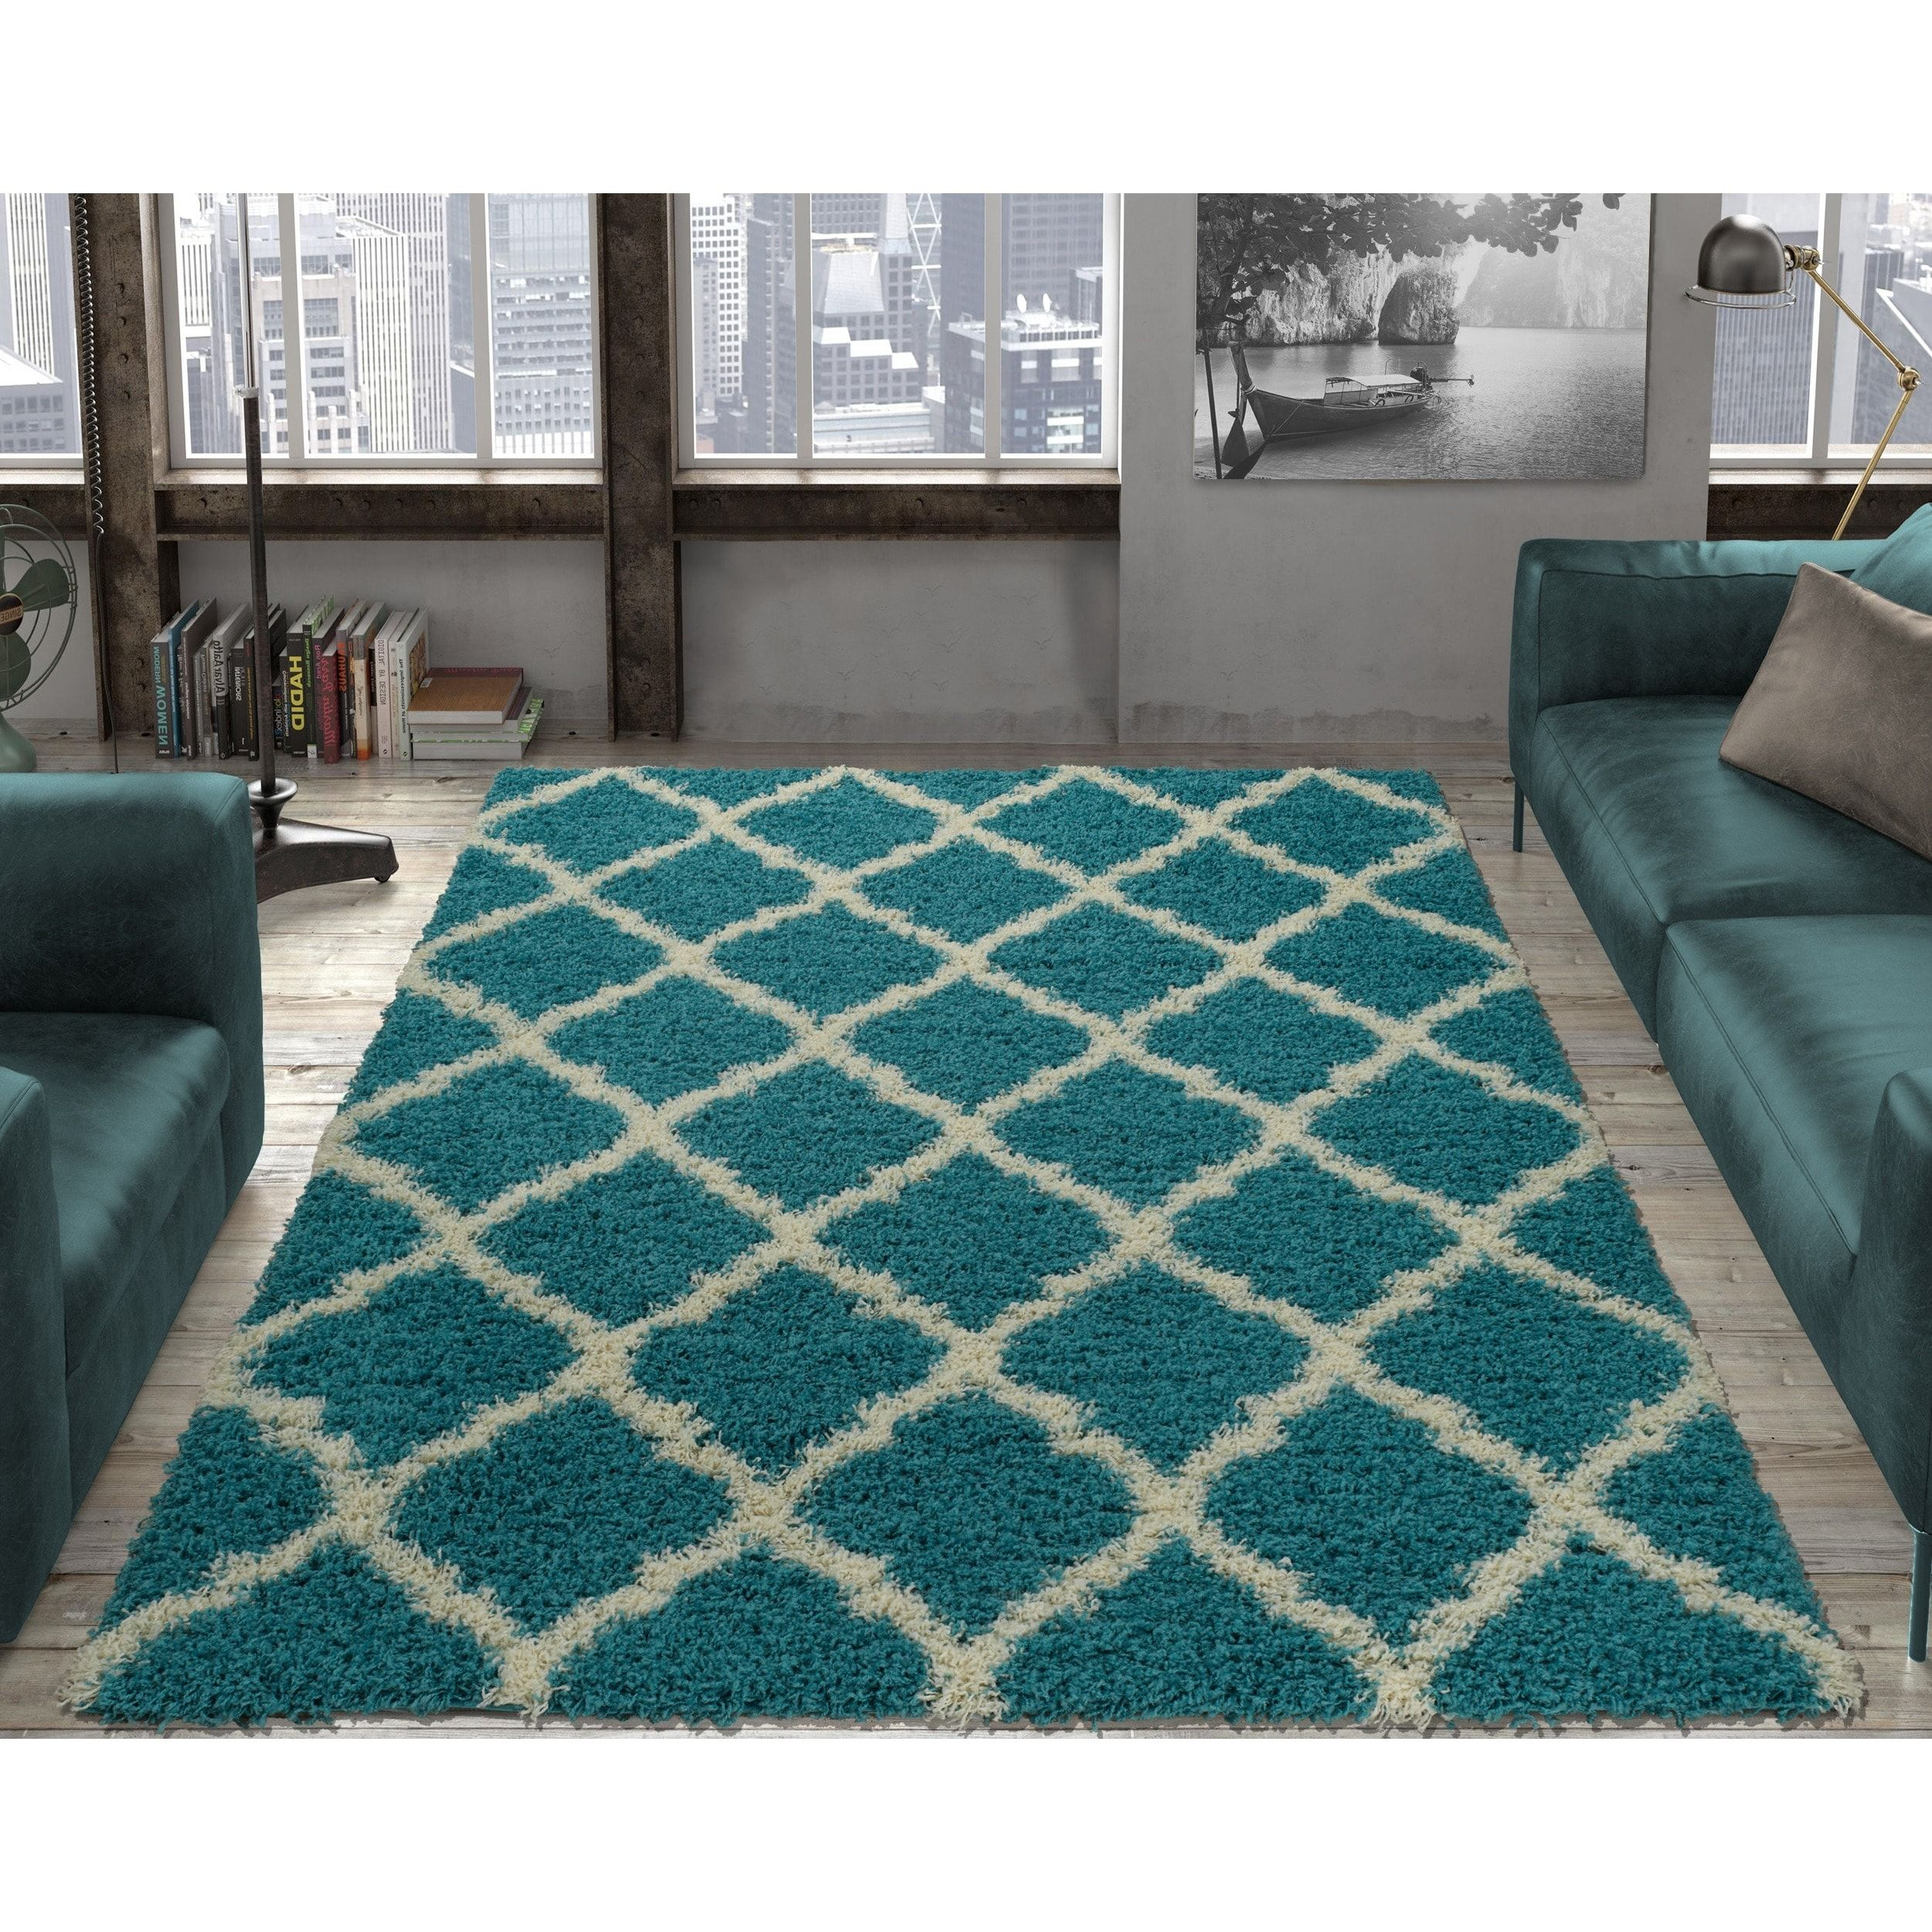 Ottomanson Ultimate Collection Moroccan Trellis Design Kids Area Rug 3 X 5